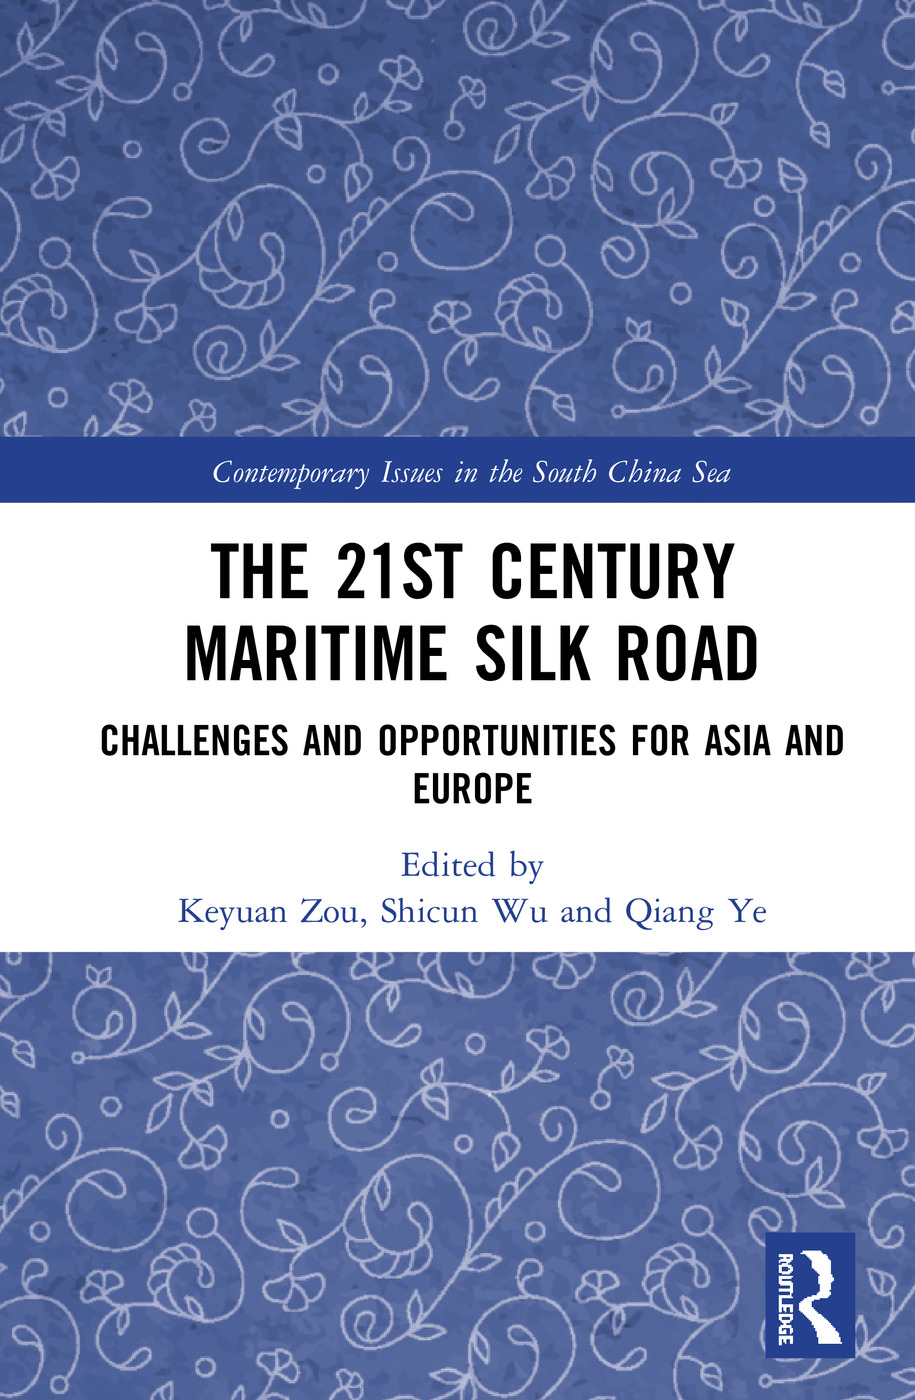 The 21st Century Maritime Silk Road: Challenges and Opportunities for Asia and Europe book cover